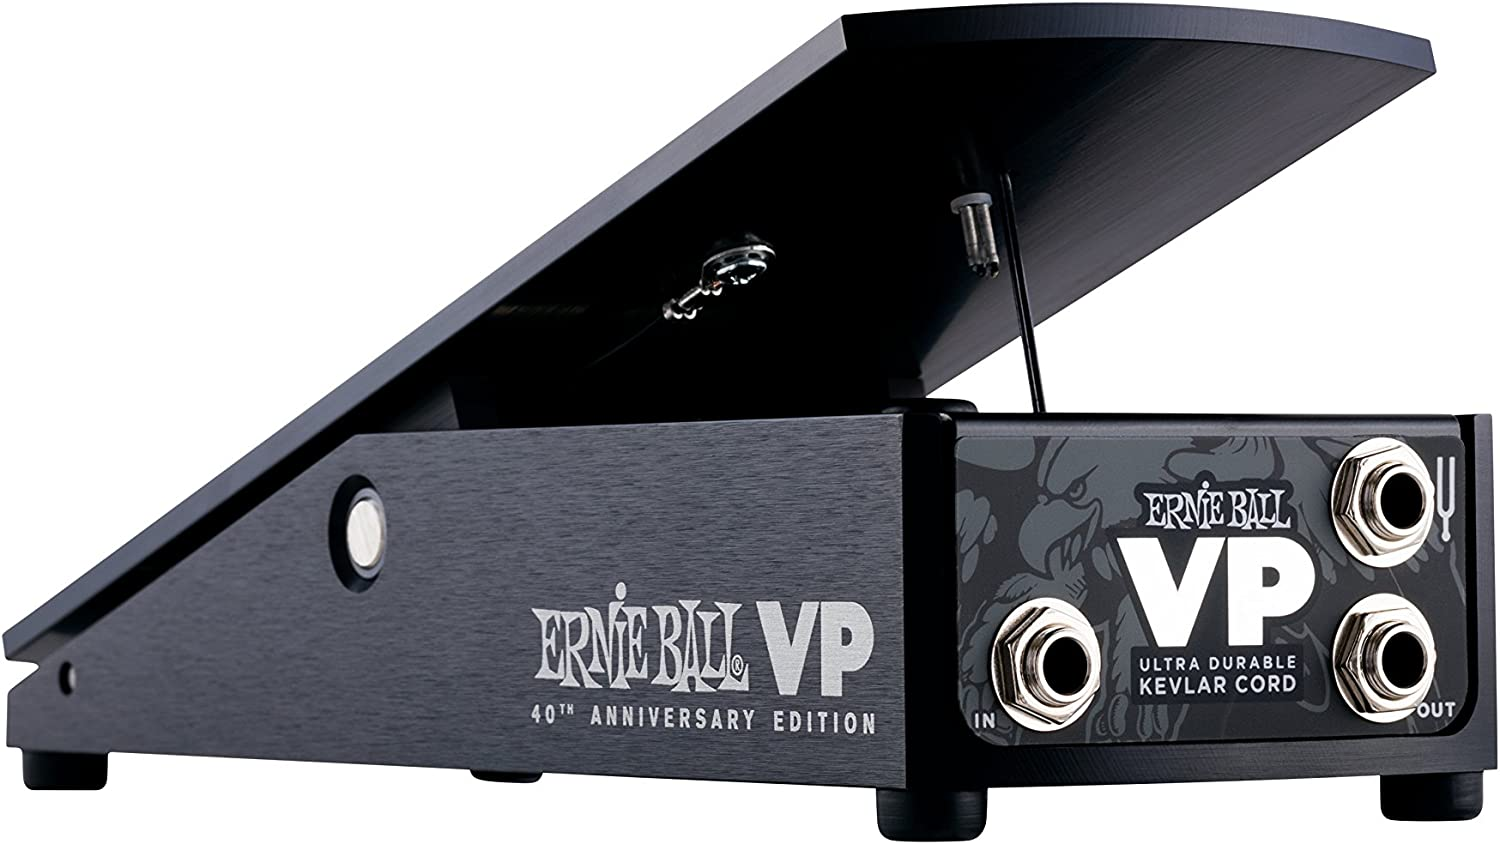 Ernie Ball 40th Anniversary Volume Pedal (P06110)